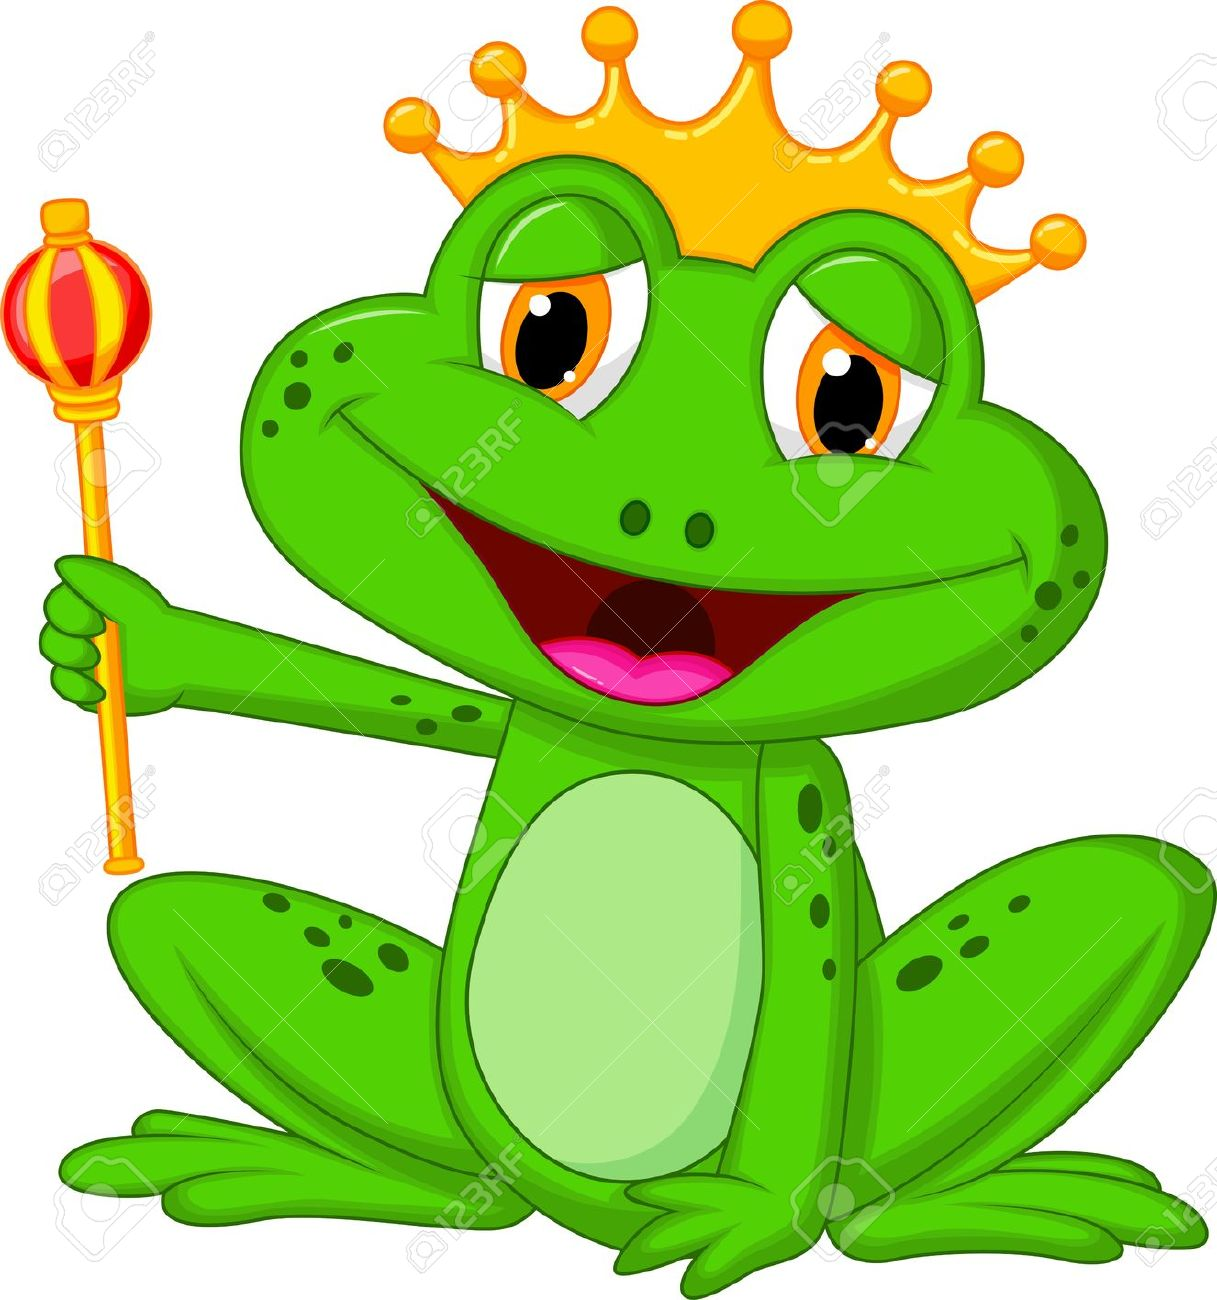 Frog king clipart.